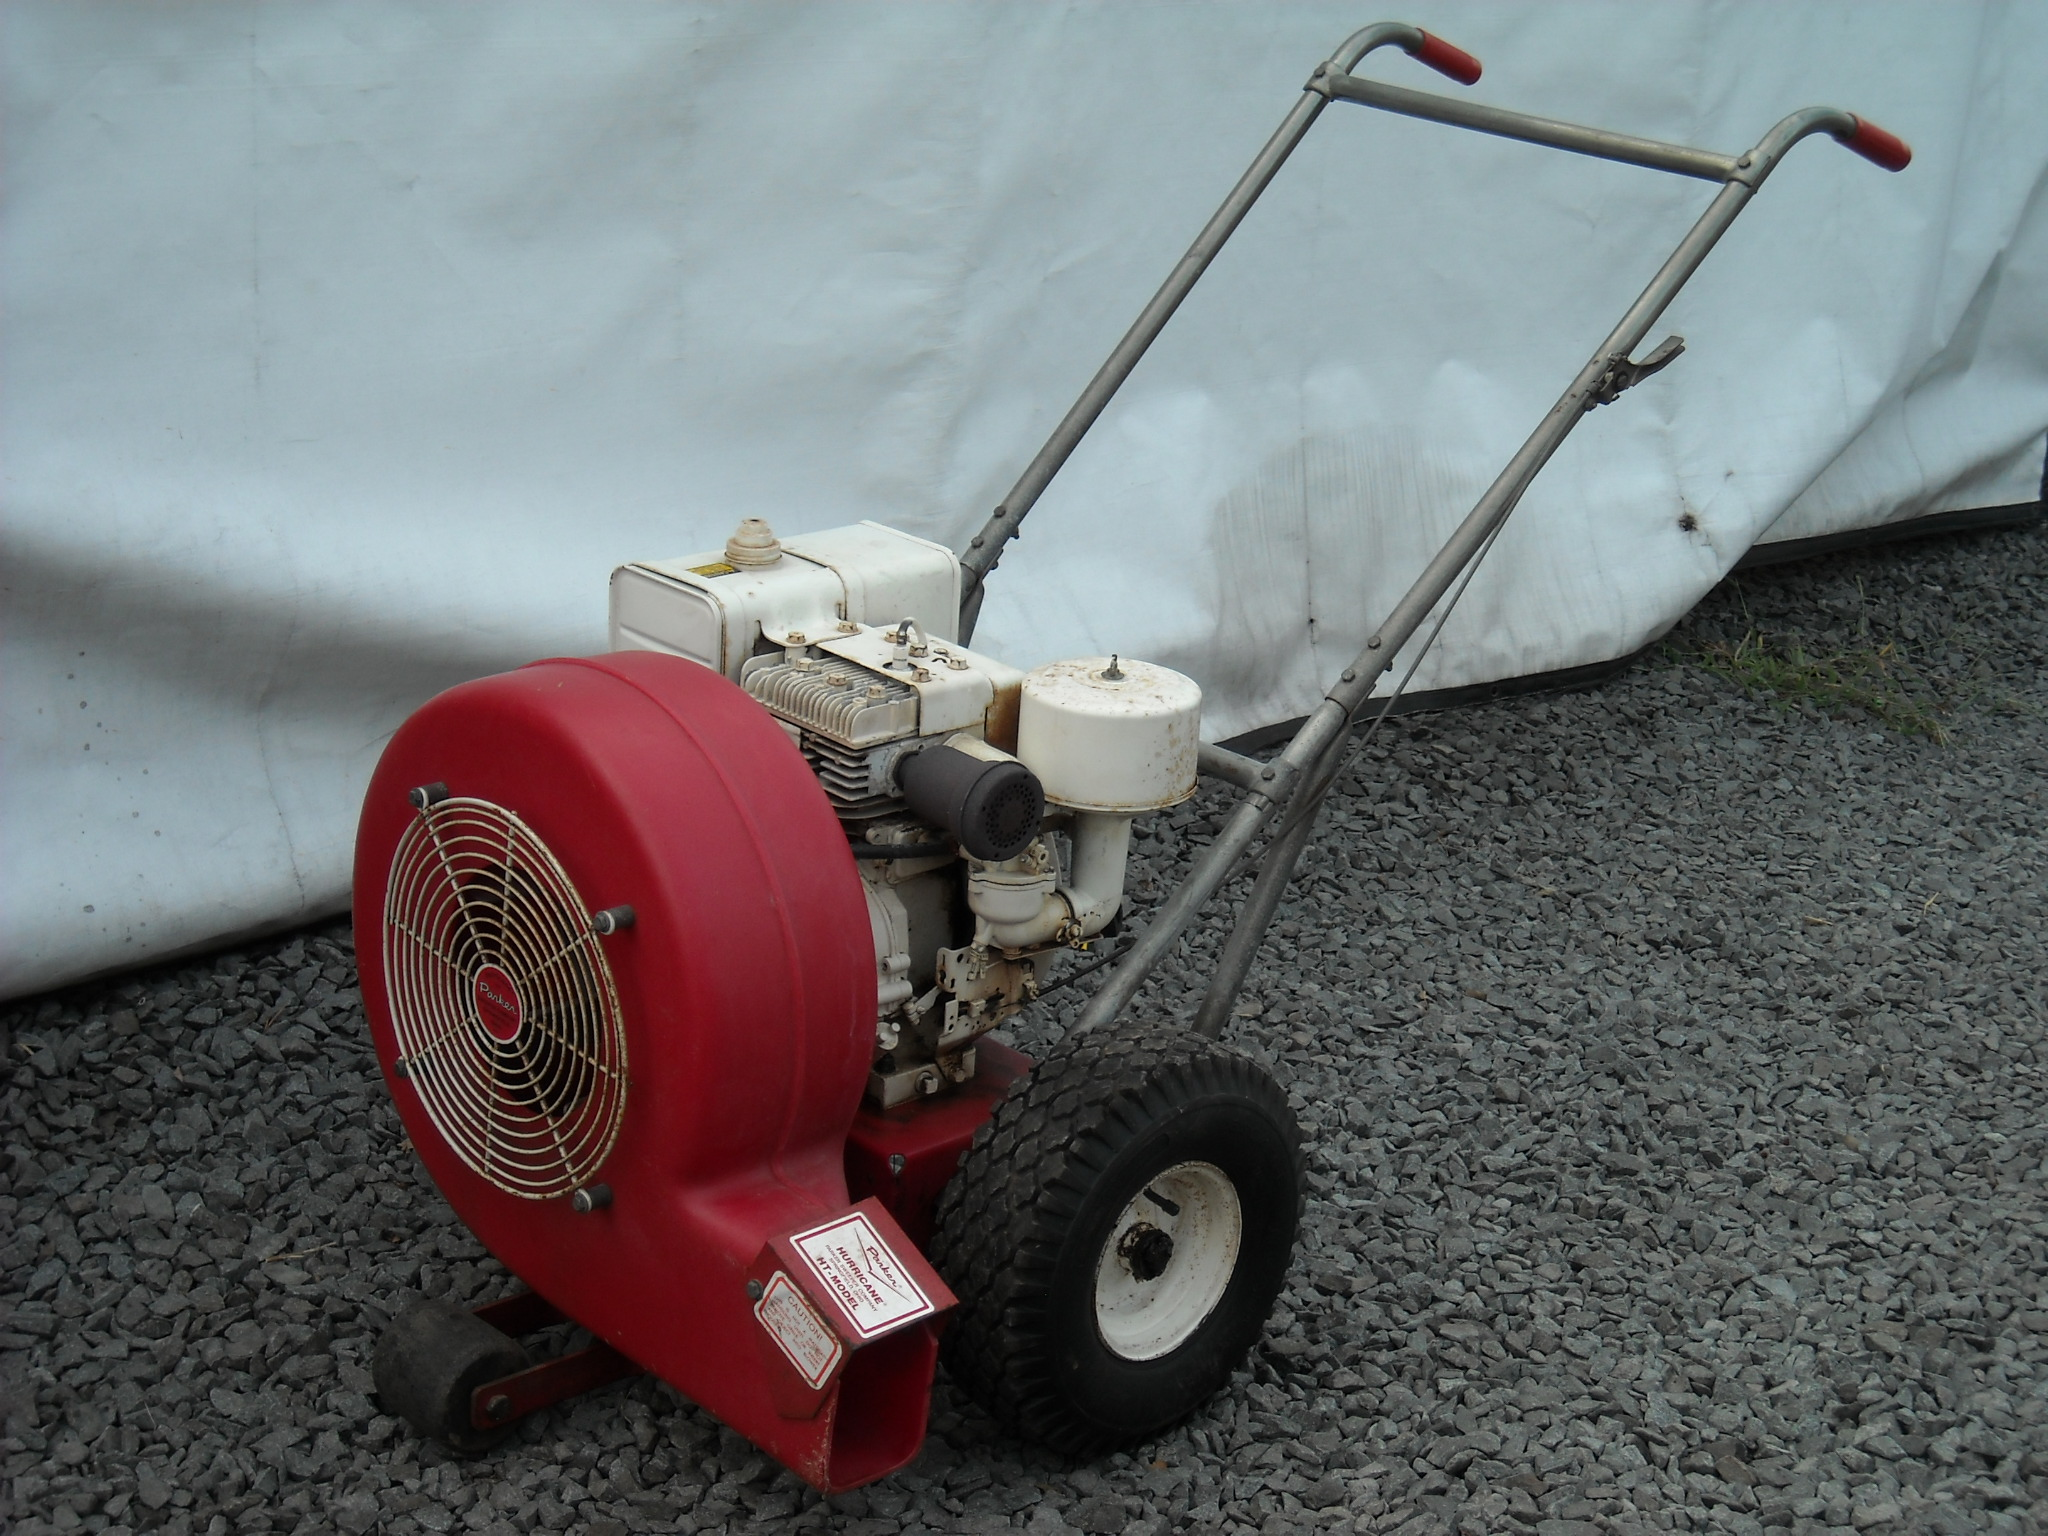 Parker Hurracane leaf blower - B&S 8HP- 1988 model HT-8880-B ...